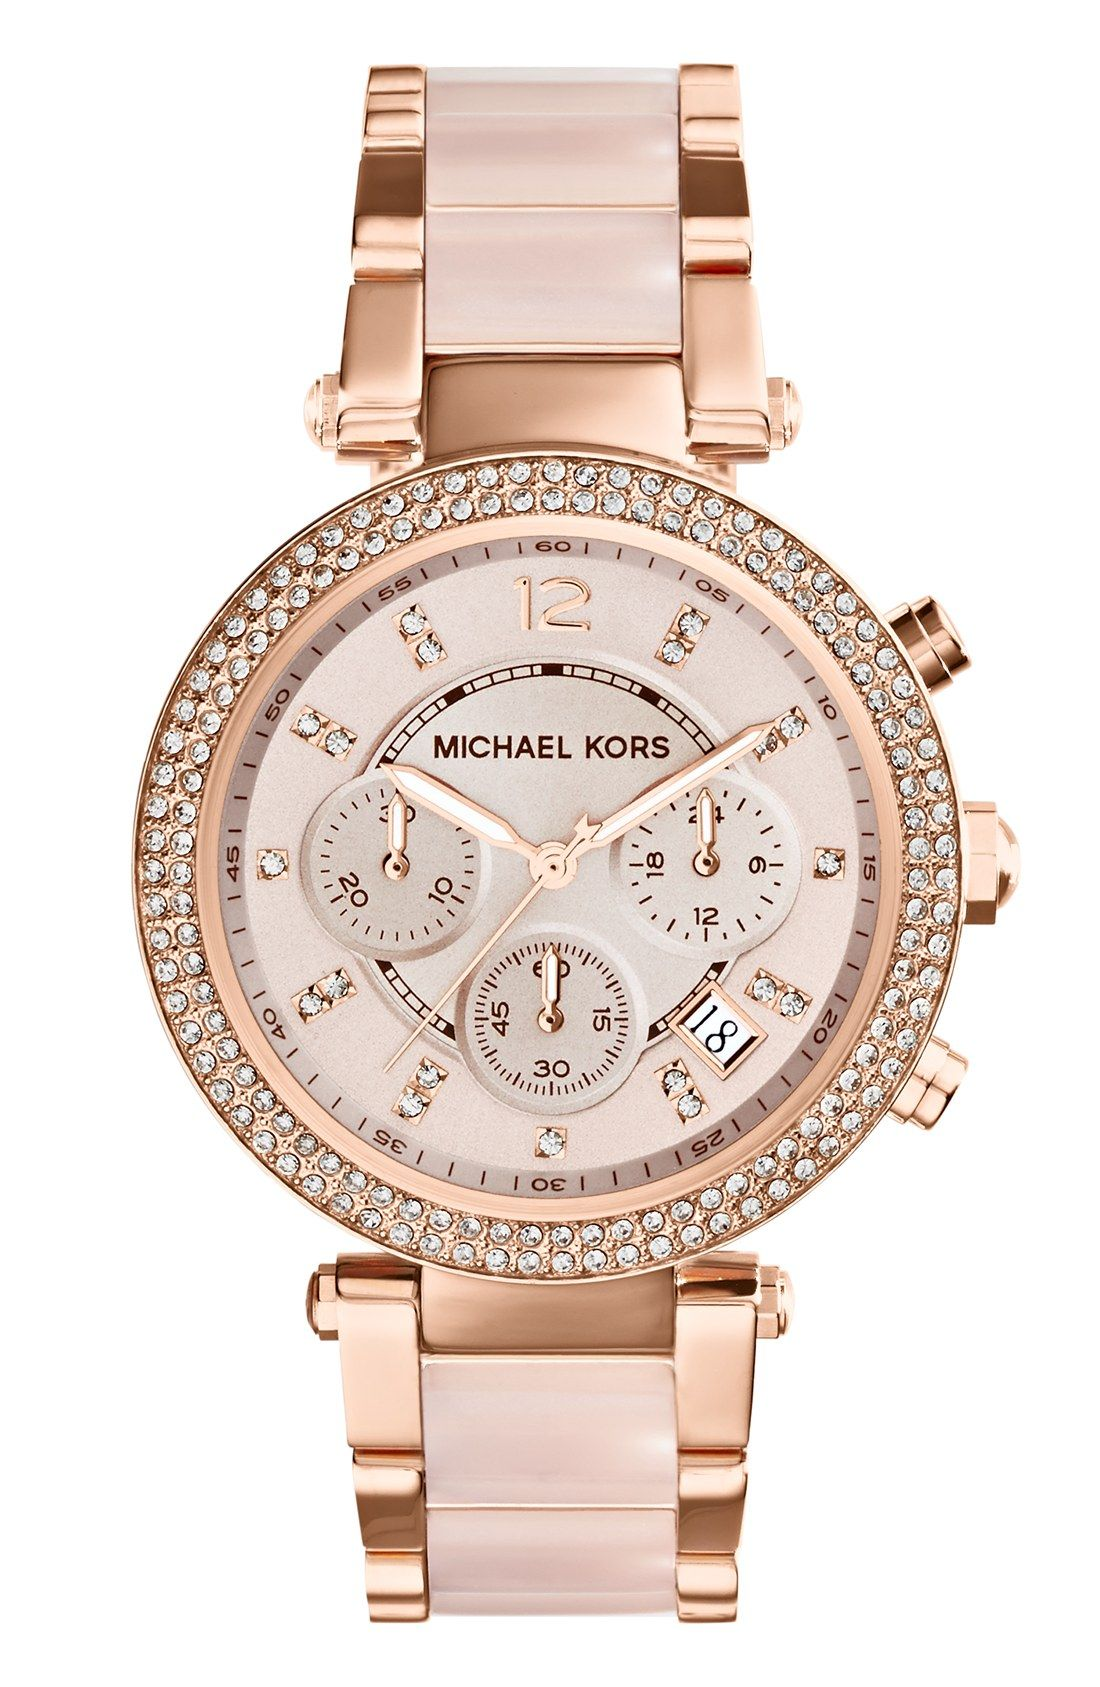 7fcdde8b122b7 Crystal and rose gold Michael Kors watch. Love this!